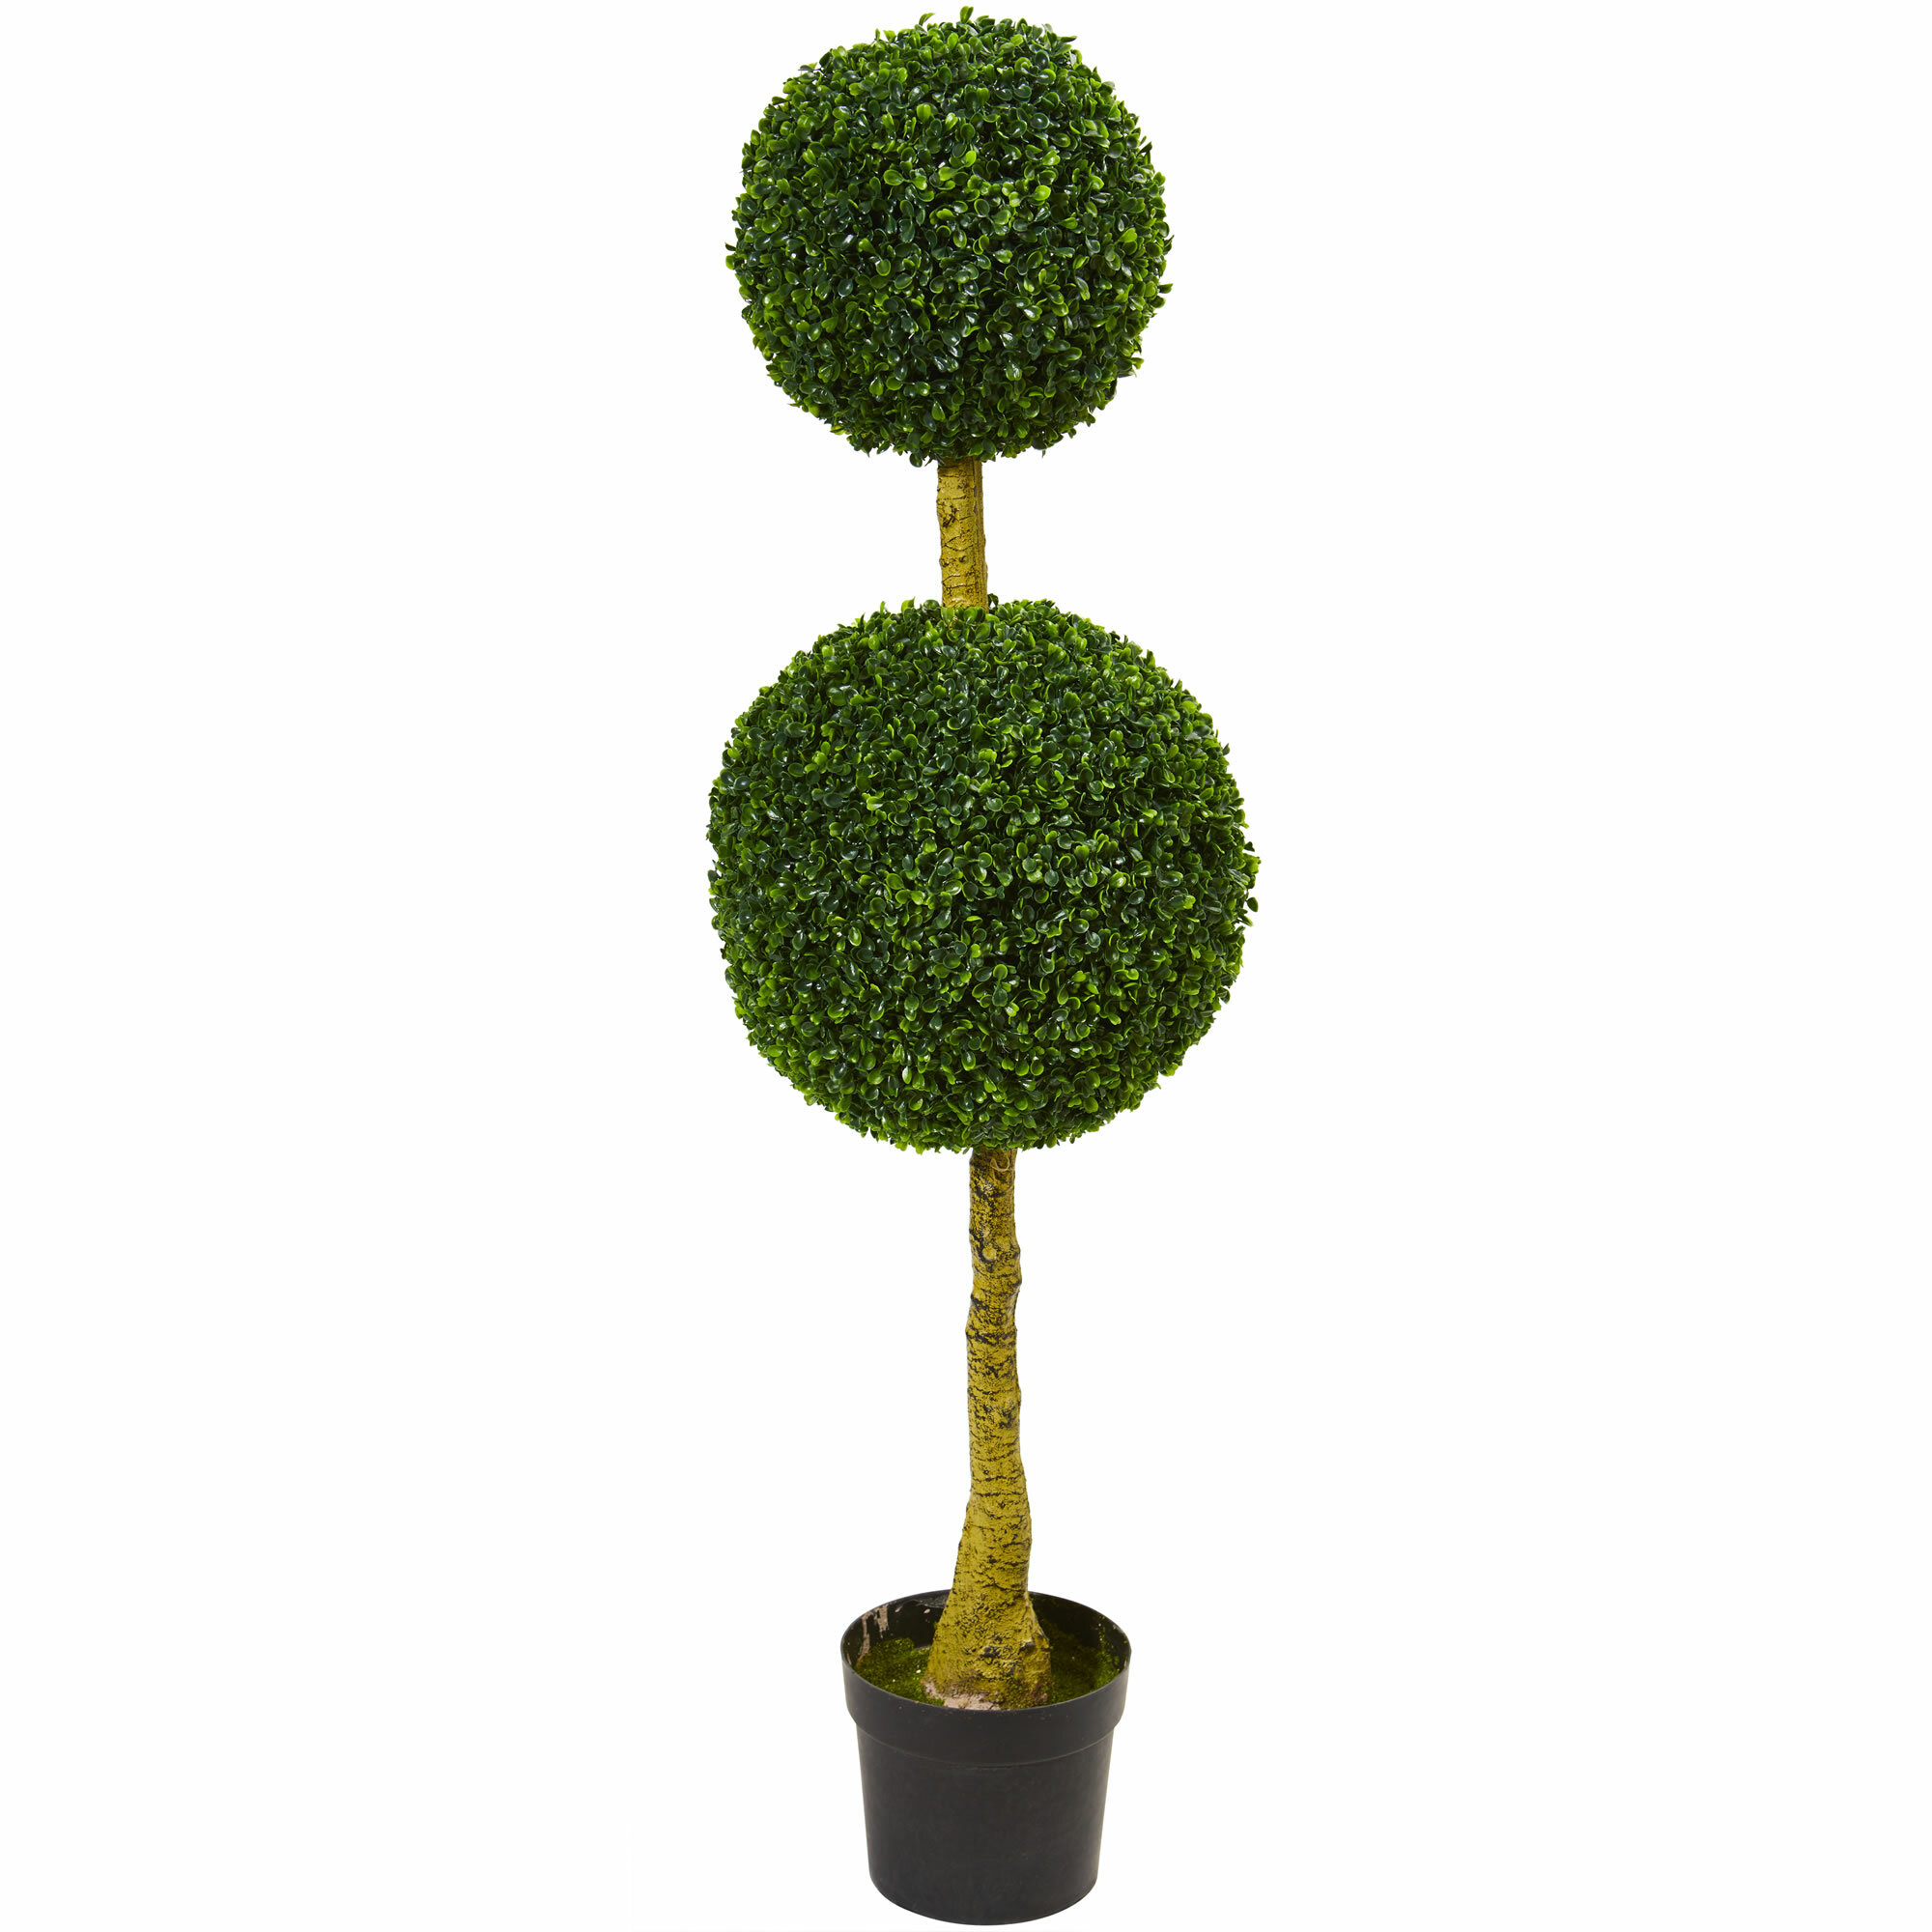 Darby Home Co 47 Artificial Boxwood Topiary In Planter Wayfair